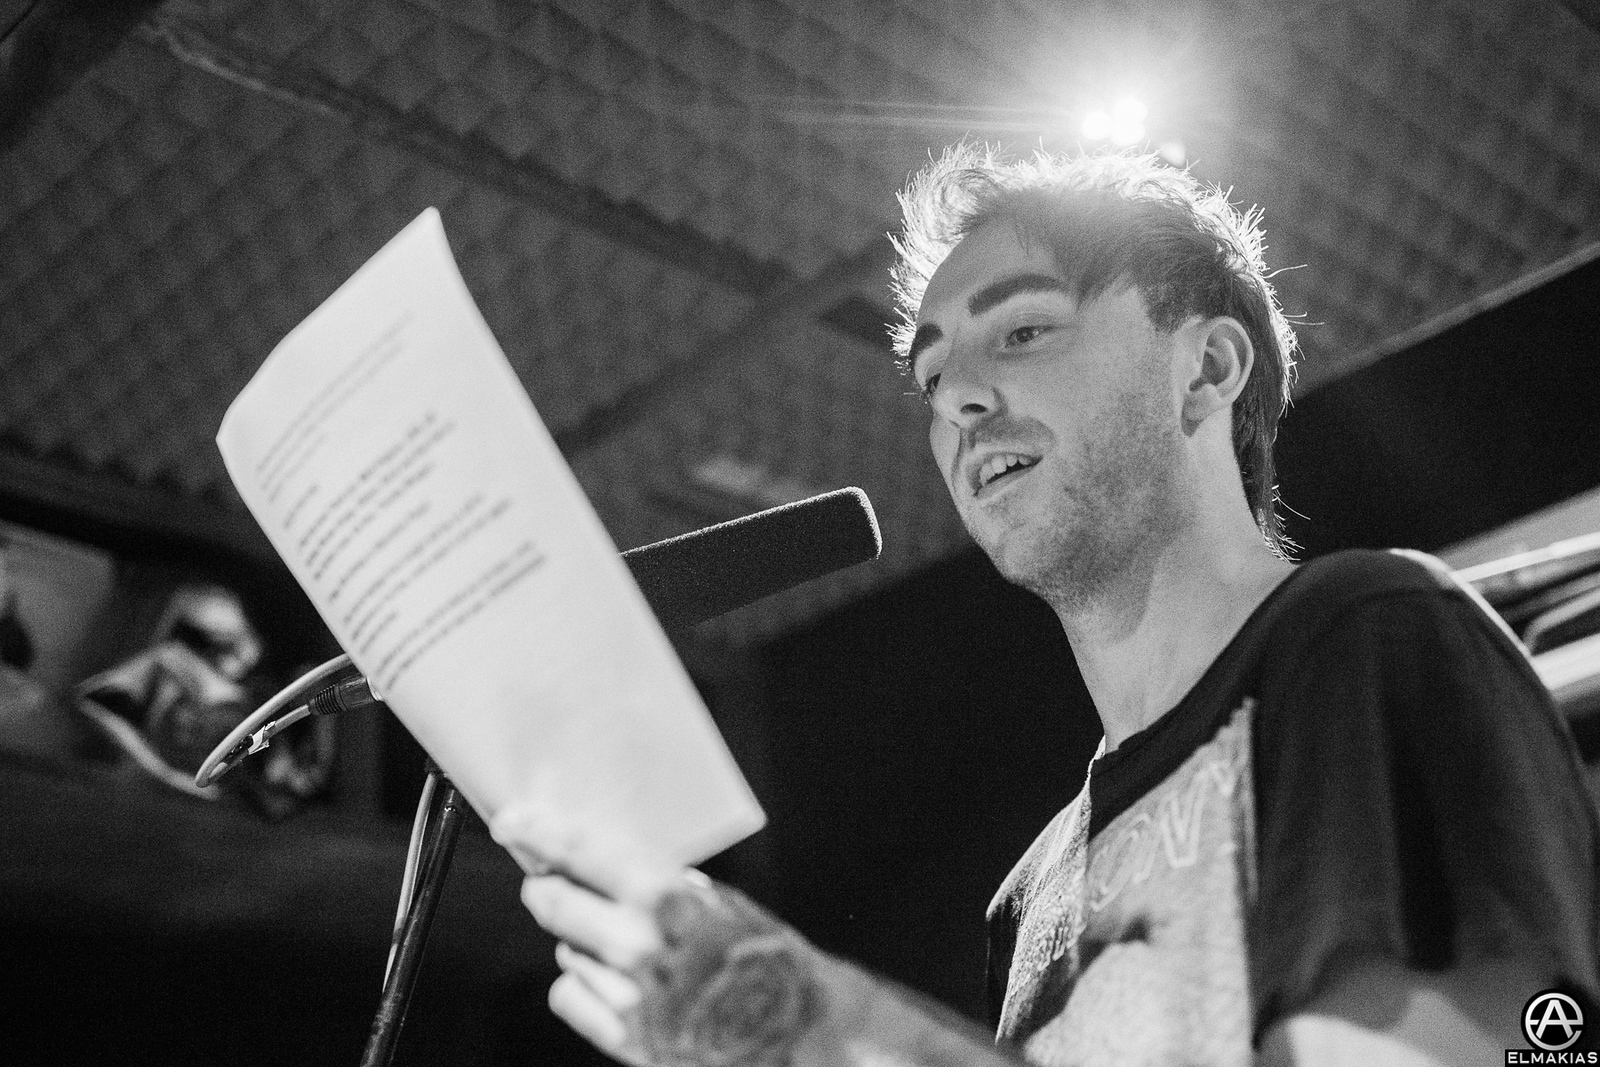 Alex Gaskarth of All Time Low at rehearsals for the Alternative Press Music Awards 2015 by Adam Elmakias